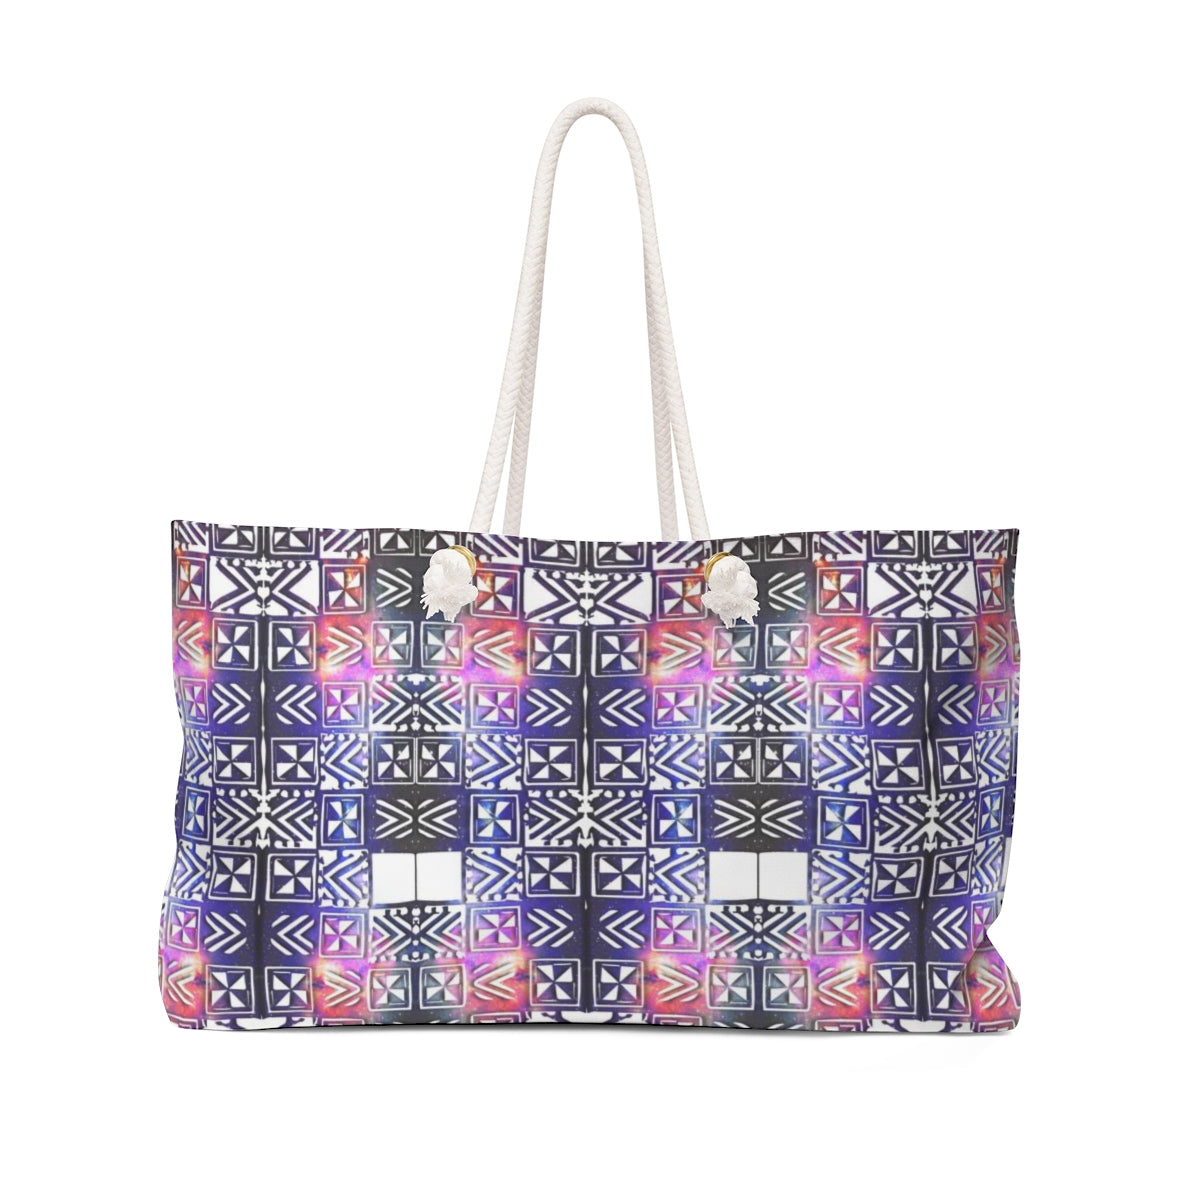 Fiji Islands #0013 (Weekender Tote)